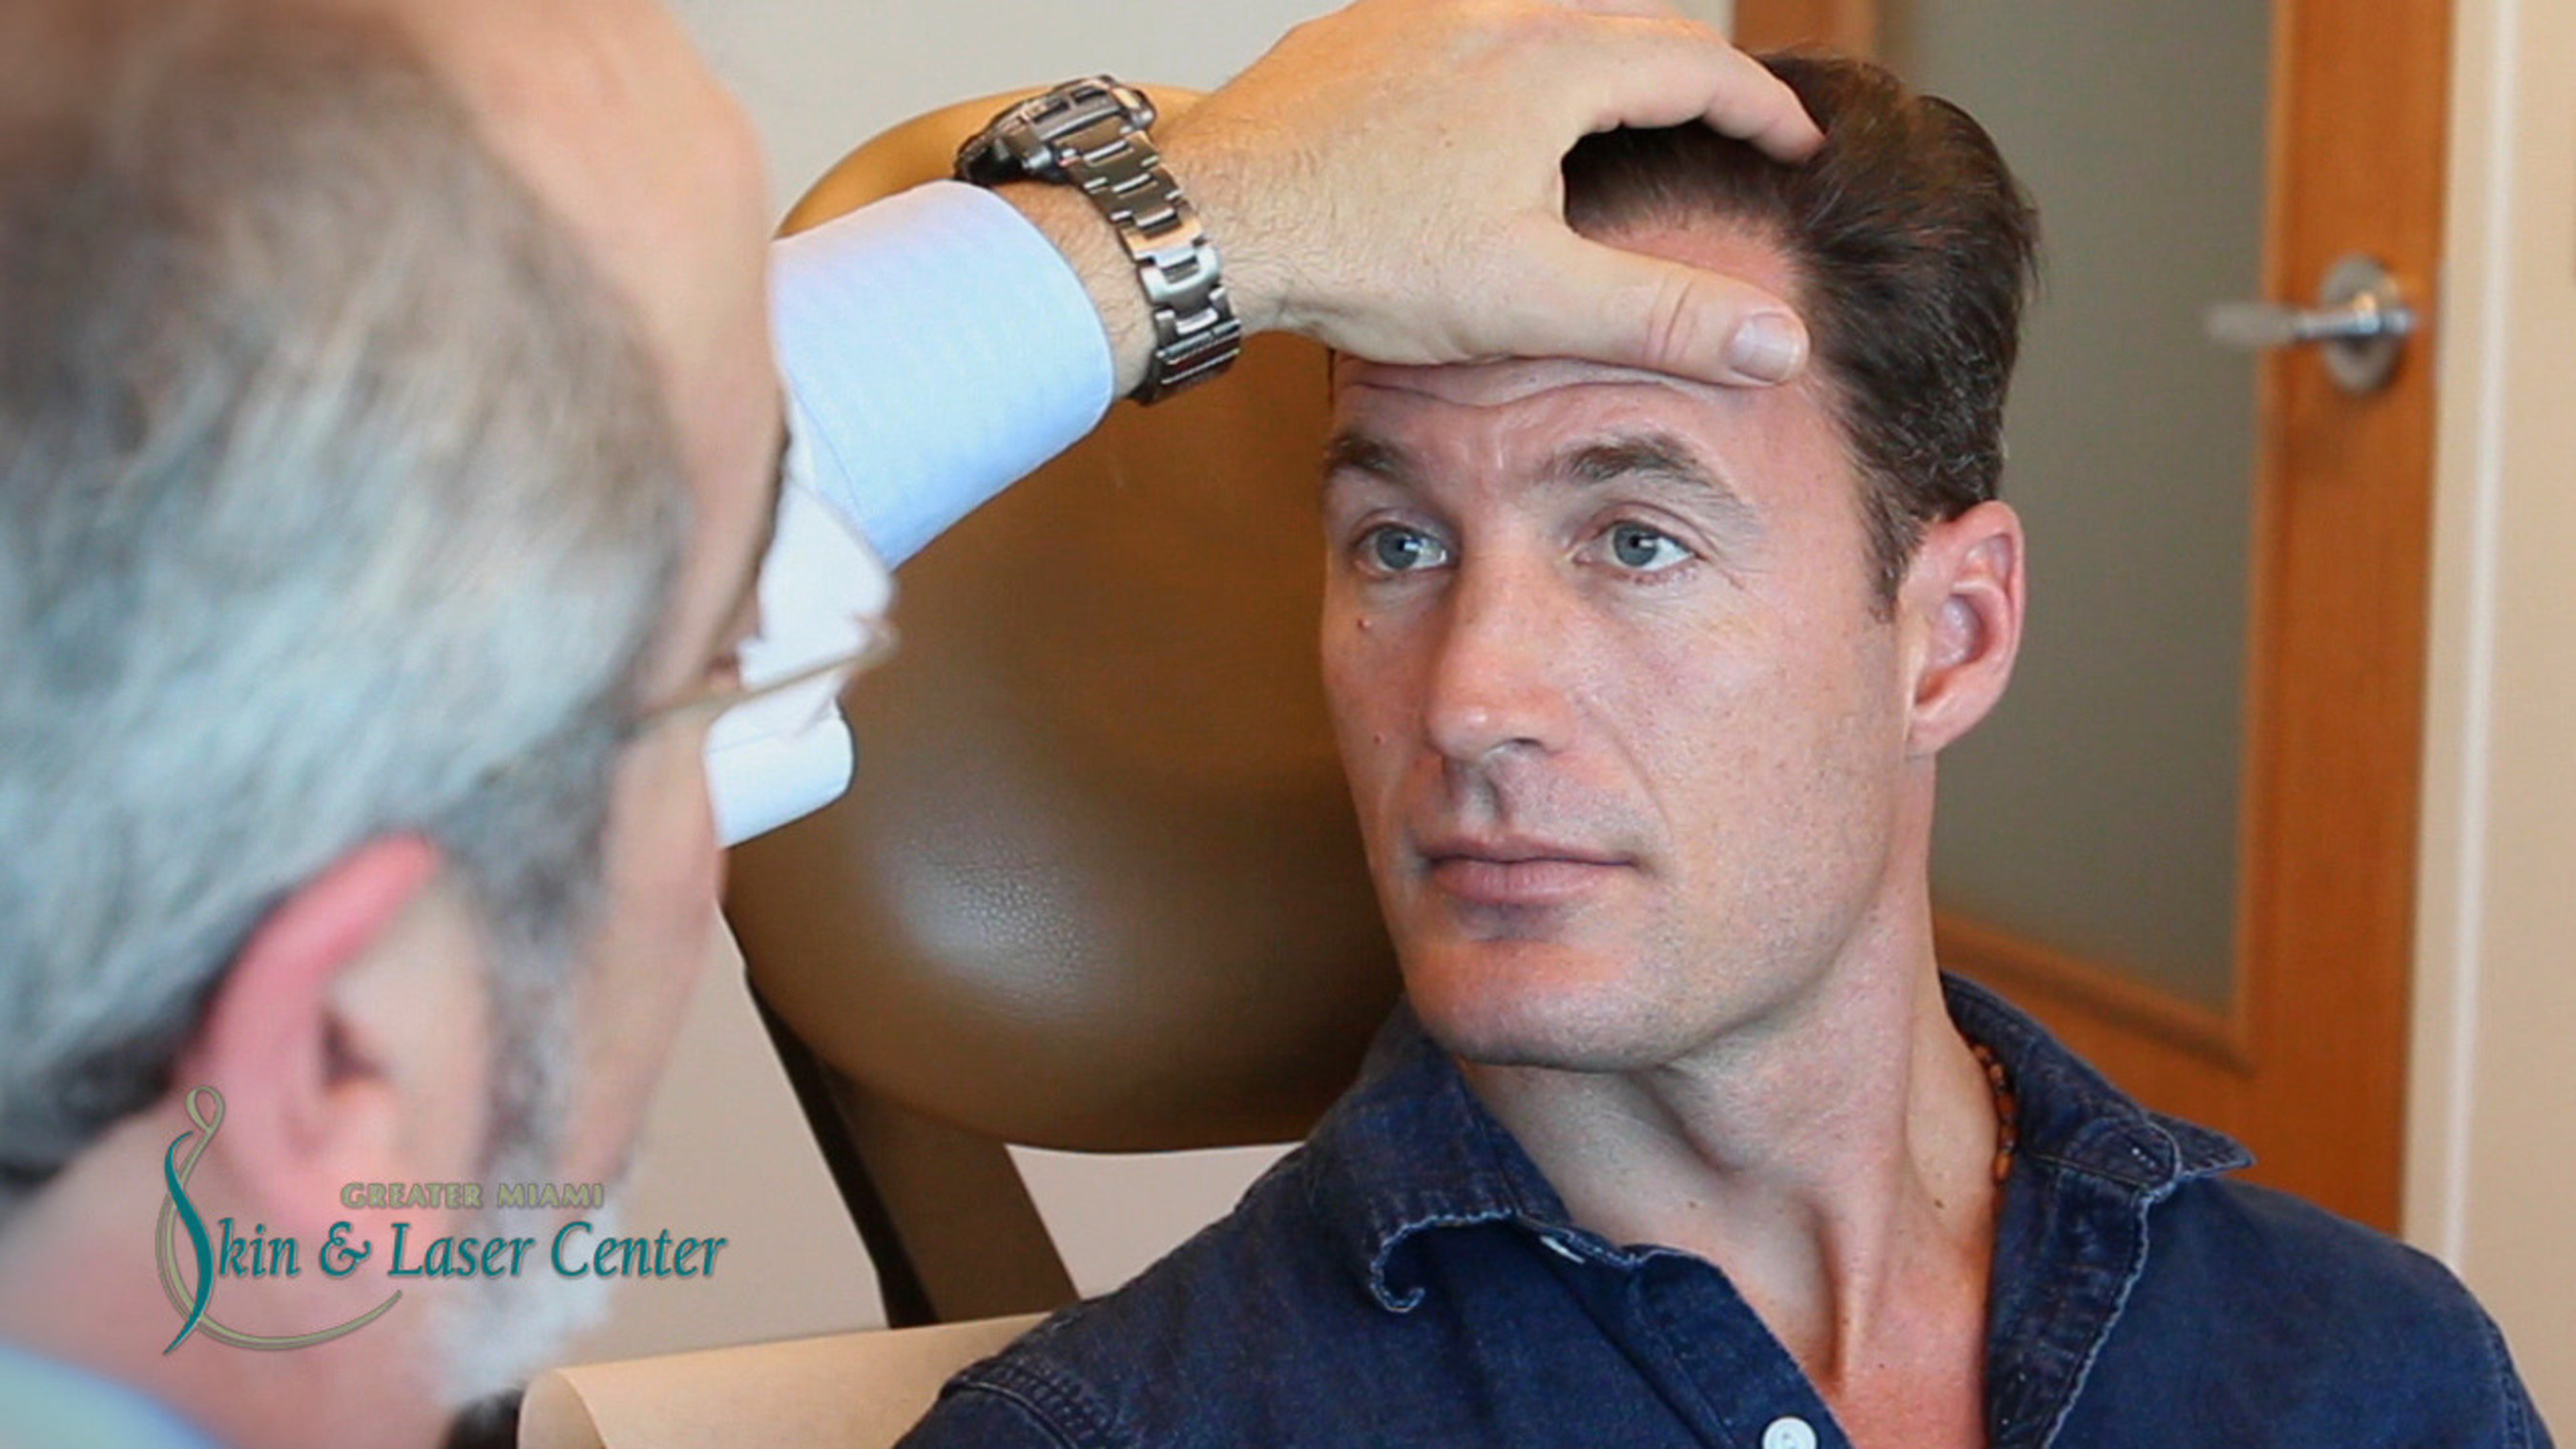 Greater Miami Skin And Laser Center Completes Wellness Exams for Men